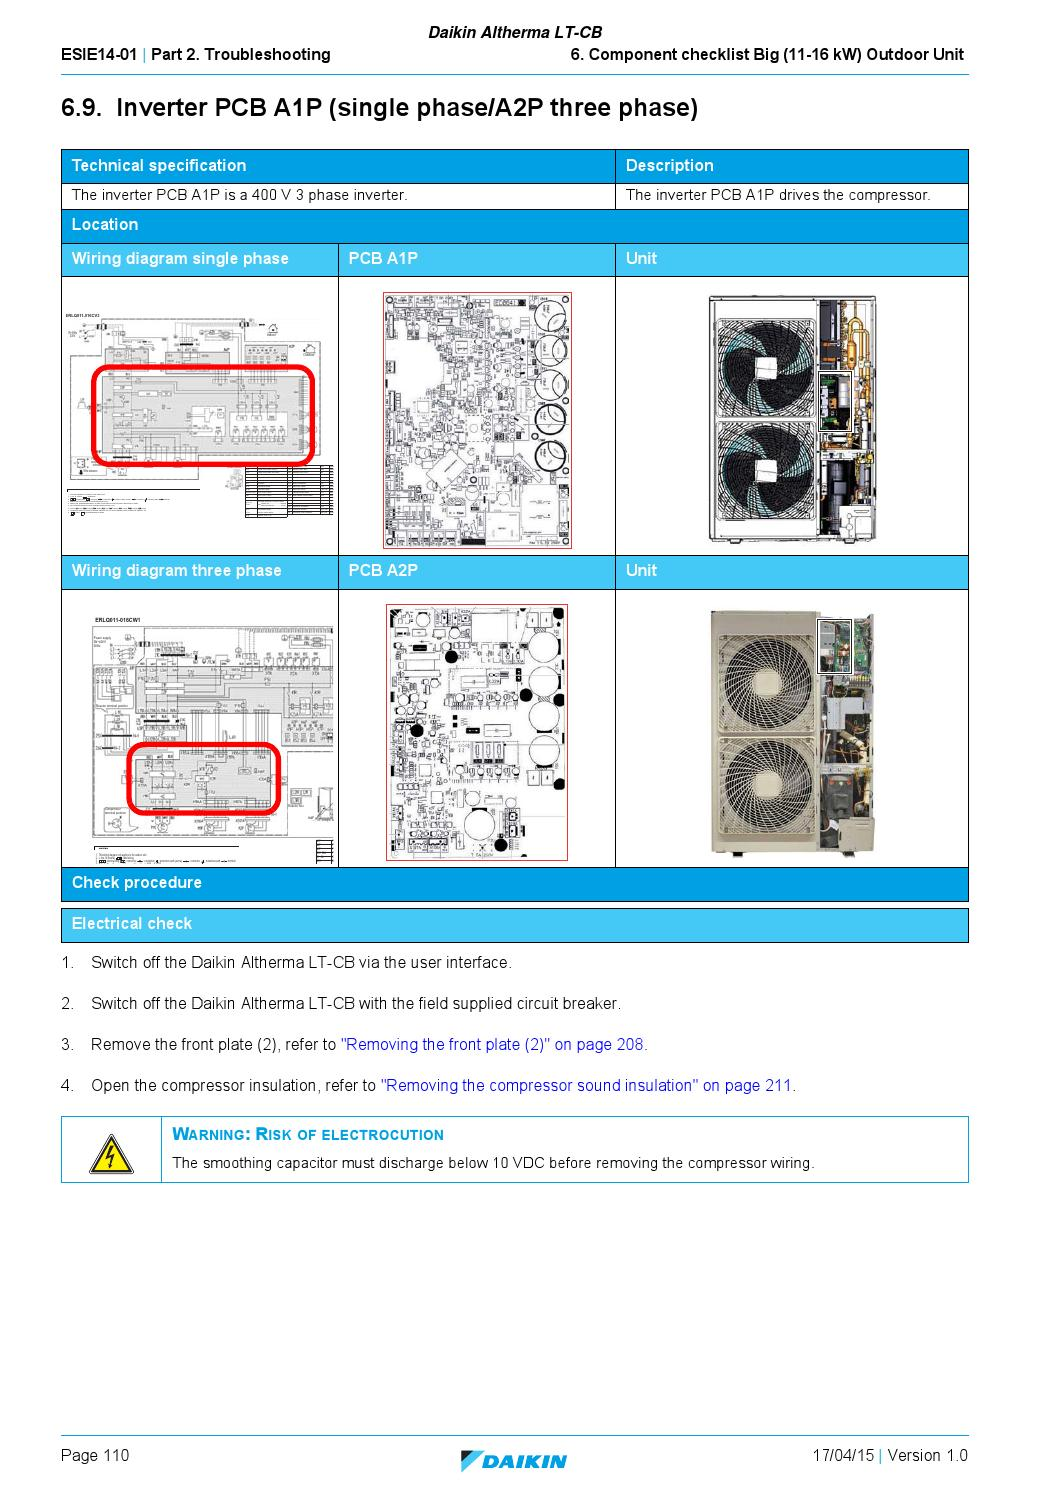 Daikin Altherma Lt-cb - English Service Manual By Paulo Moreno